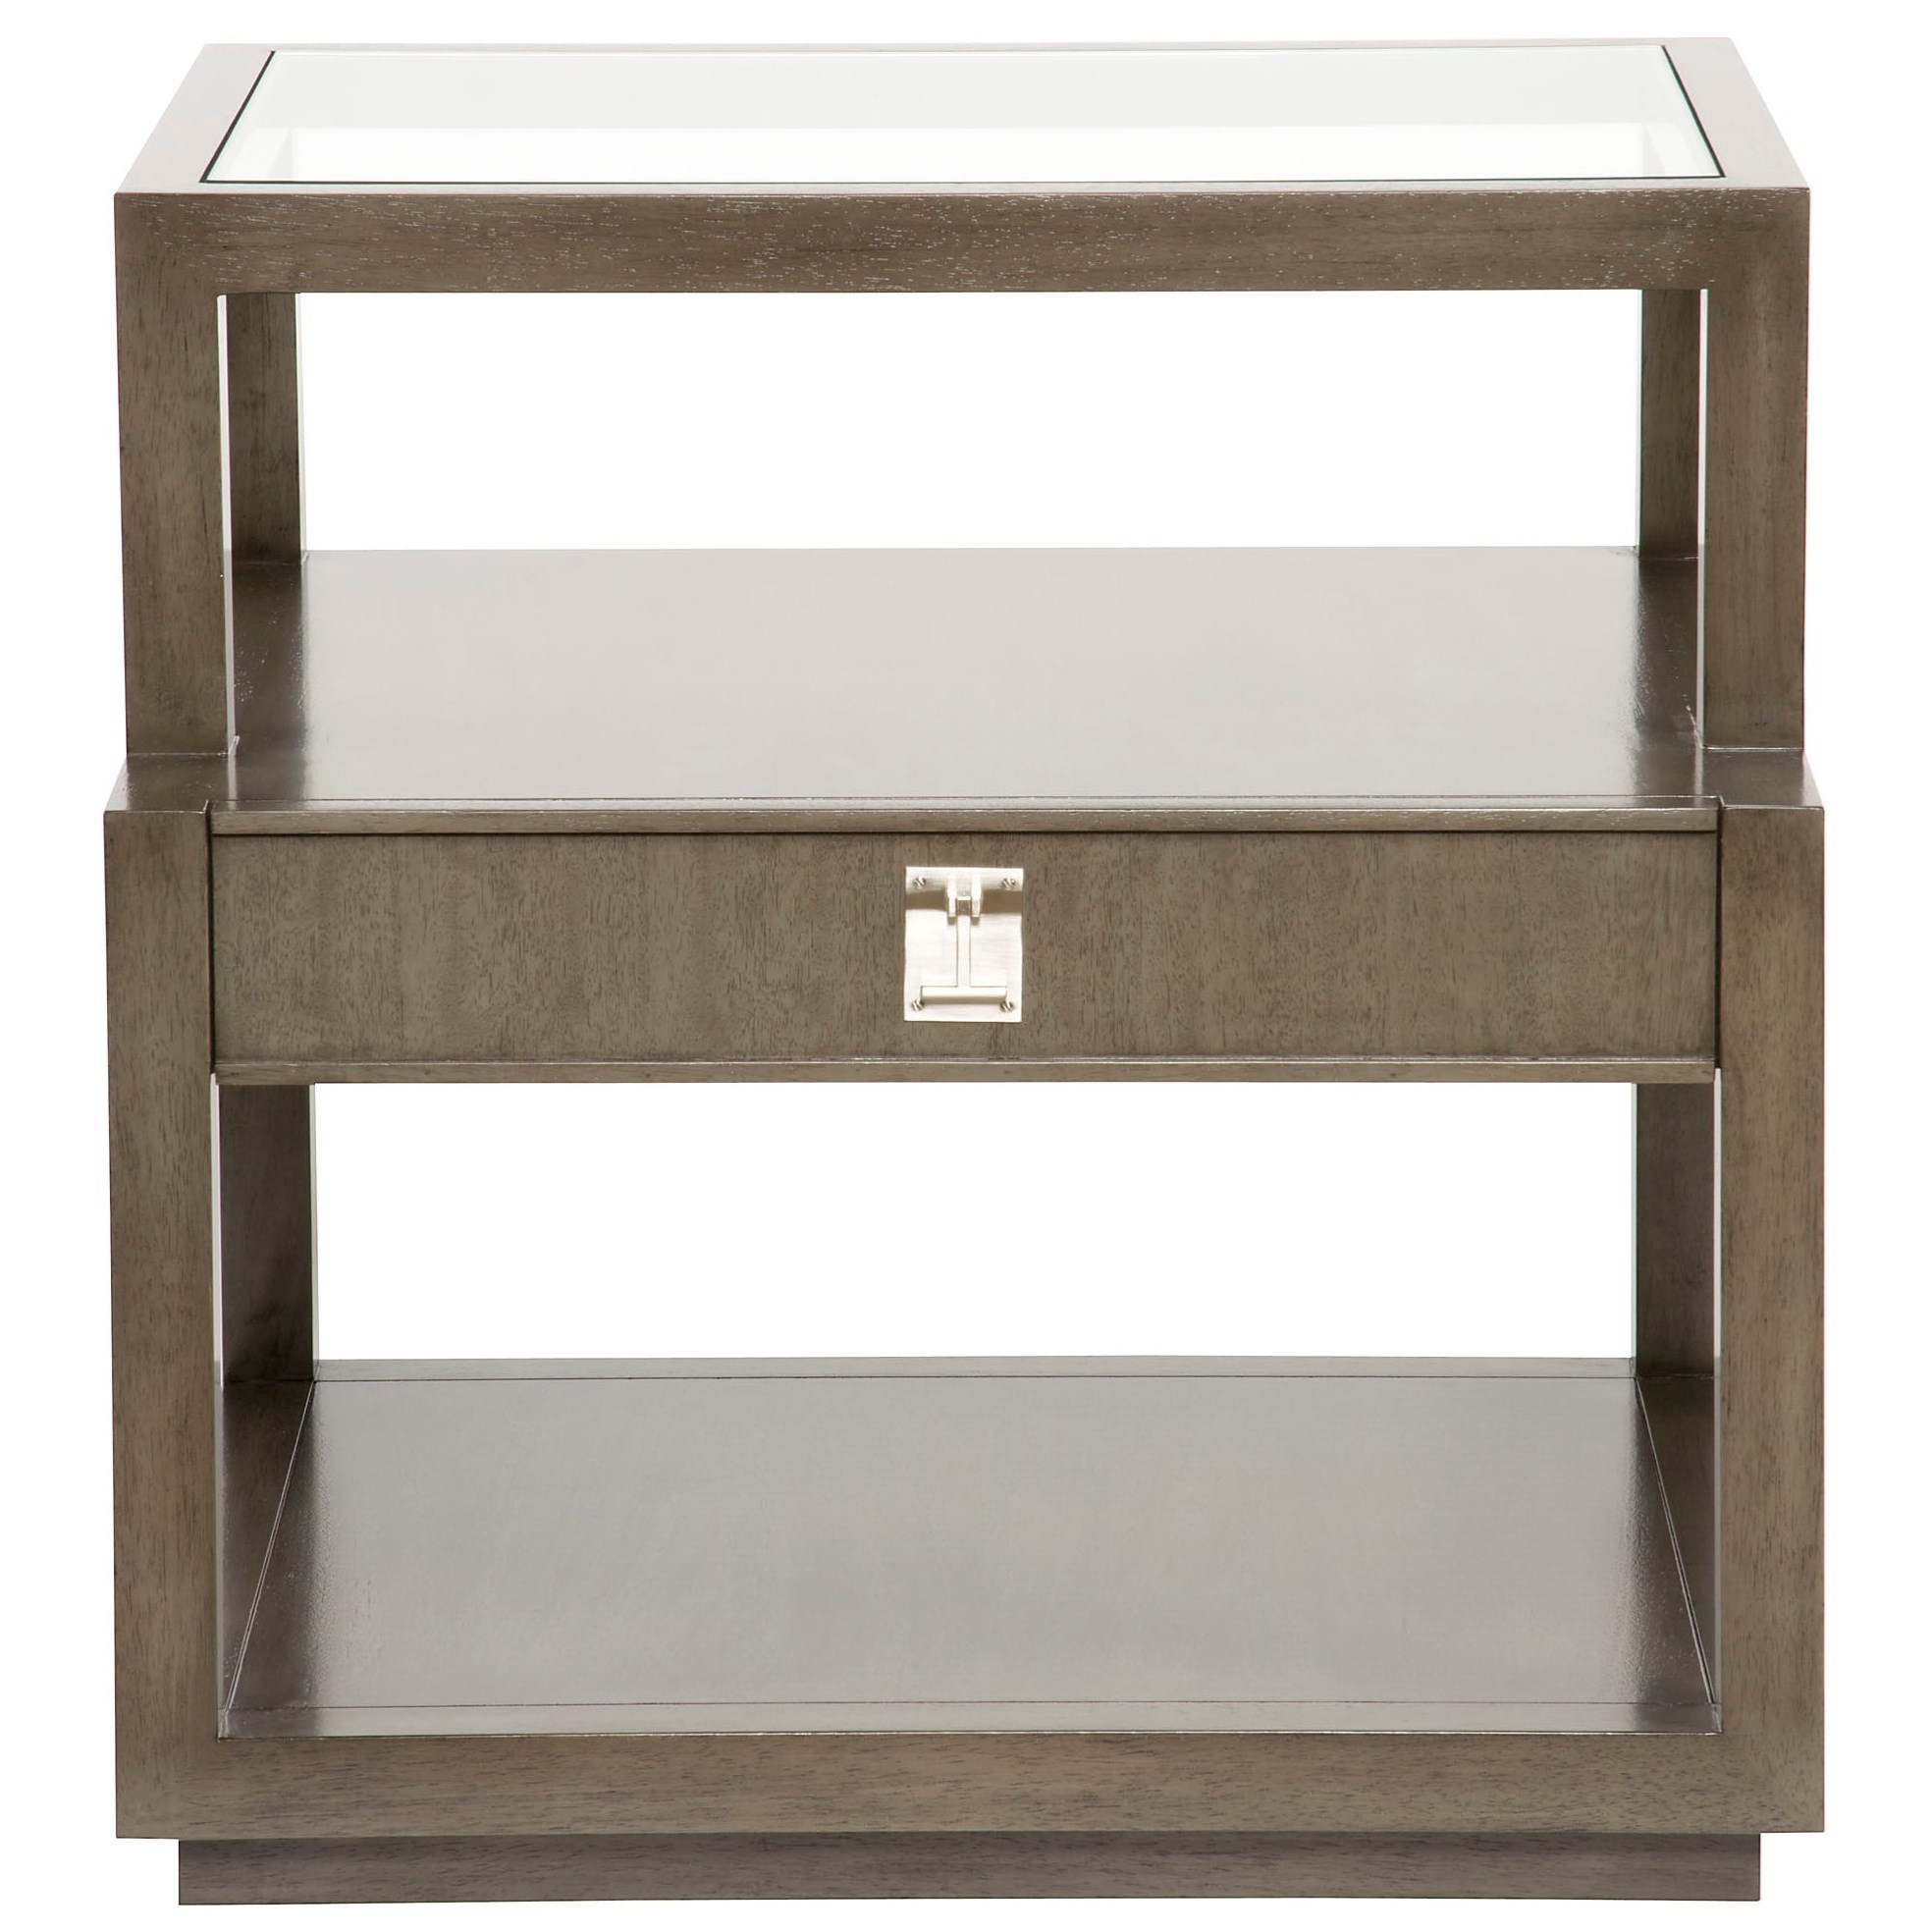 Michael Weiss Shelton Lamp Table by Vanguard Furniture at Baer's Furniture